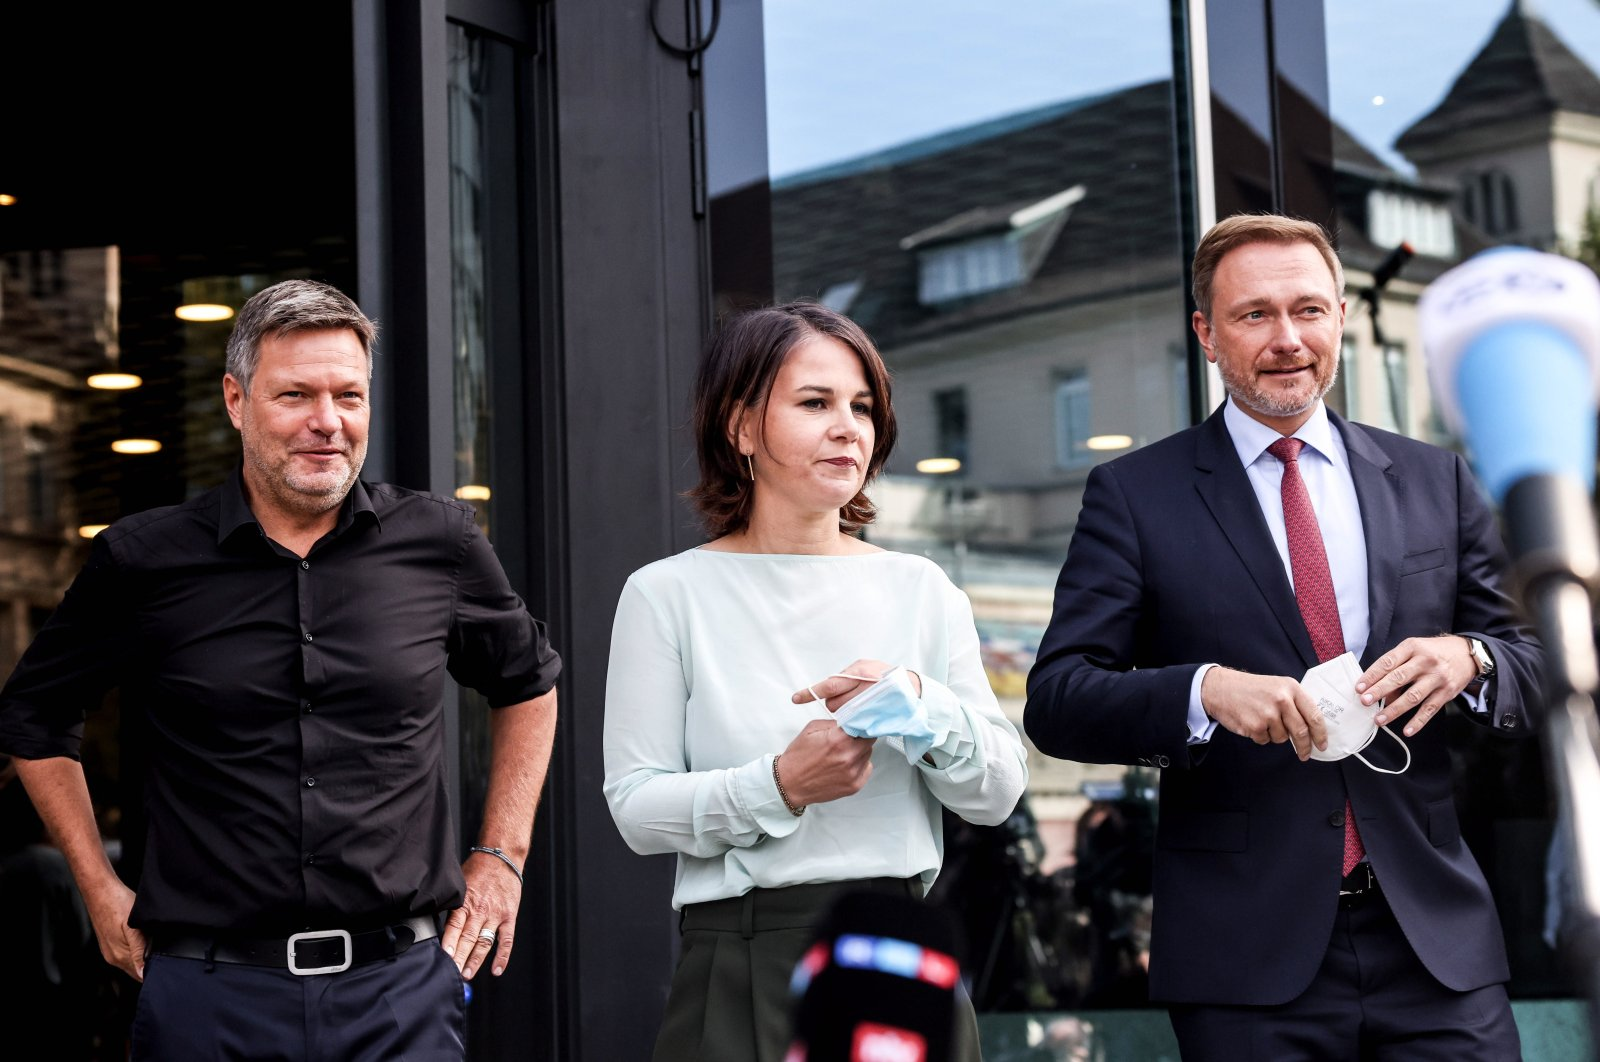 Christian Lindner, lead candidate of the German Free Democrats (FDP) (R), Green party (Die Gruenen) co-chairperson Annalena Baerbock (C) and Green party (Die Gruenen) co-chairperson Robert Habeck are seen after exploratory talks in Berlin, Germany, Oct. 1, 2021. (EPA Photo)